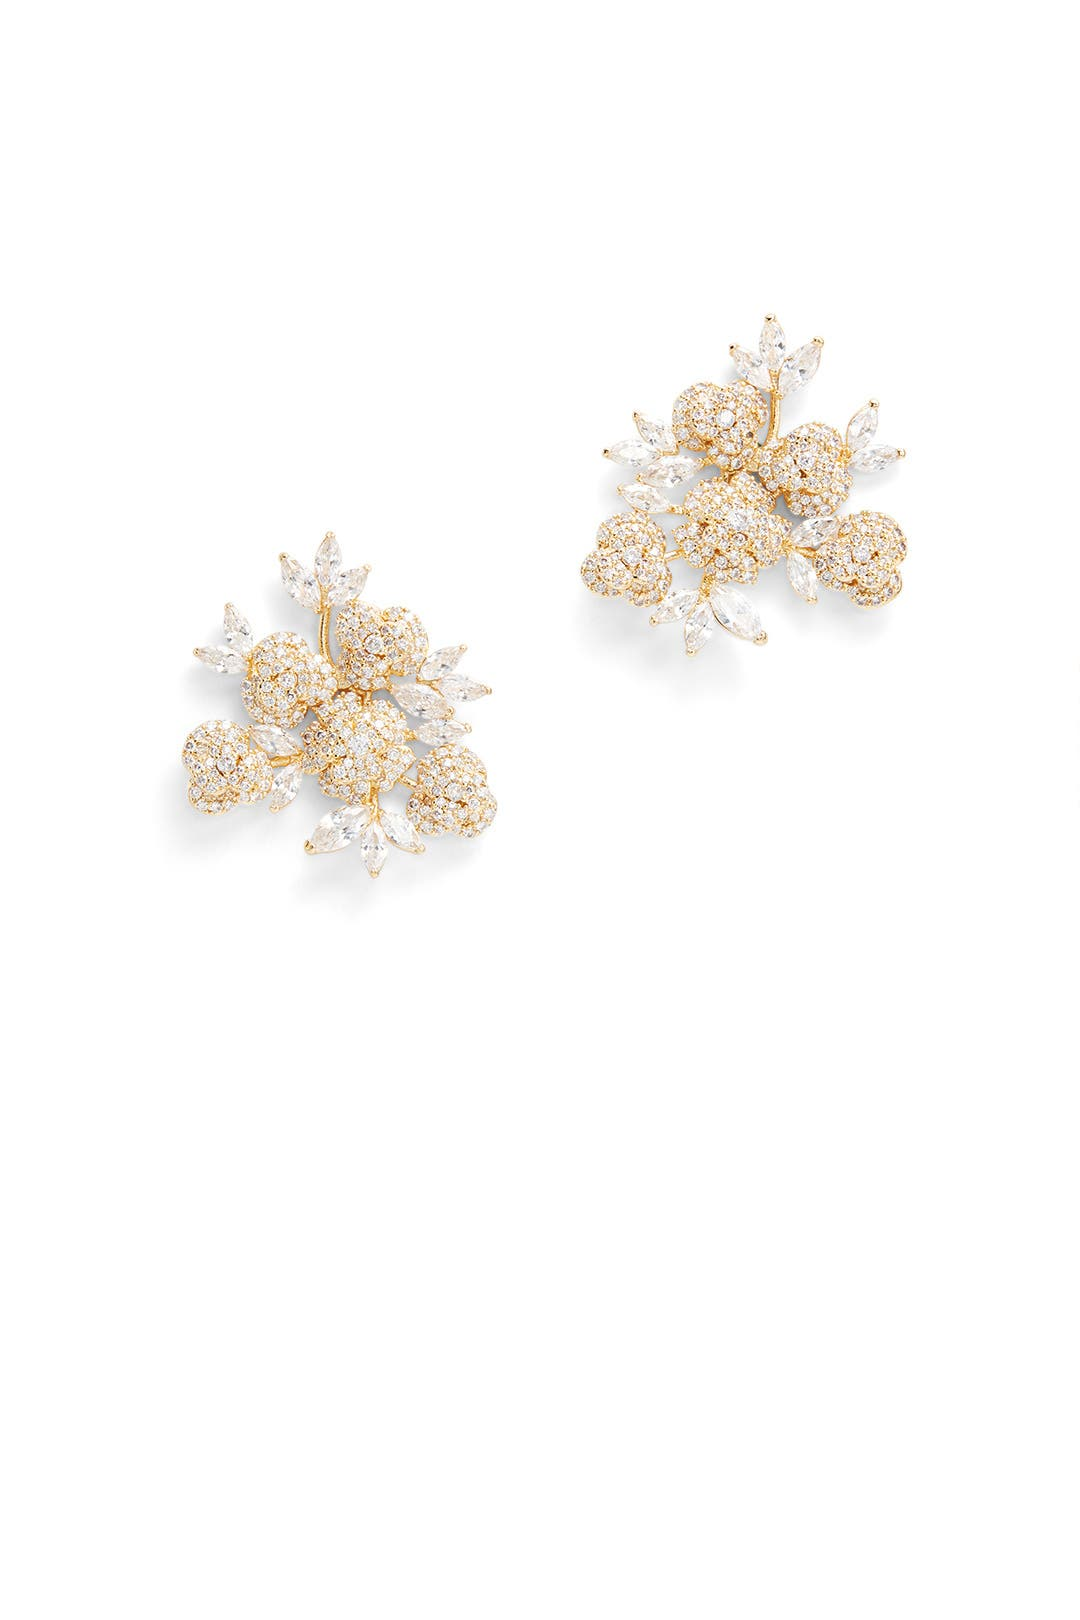 fd8d4d0df3d1 kate spade new york accessories. Read Reviews. That Special Sparkle Earrings